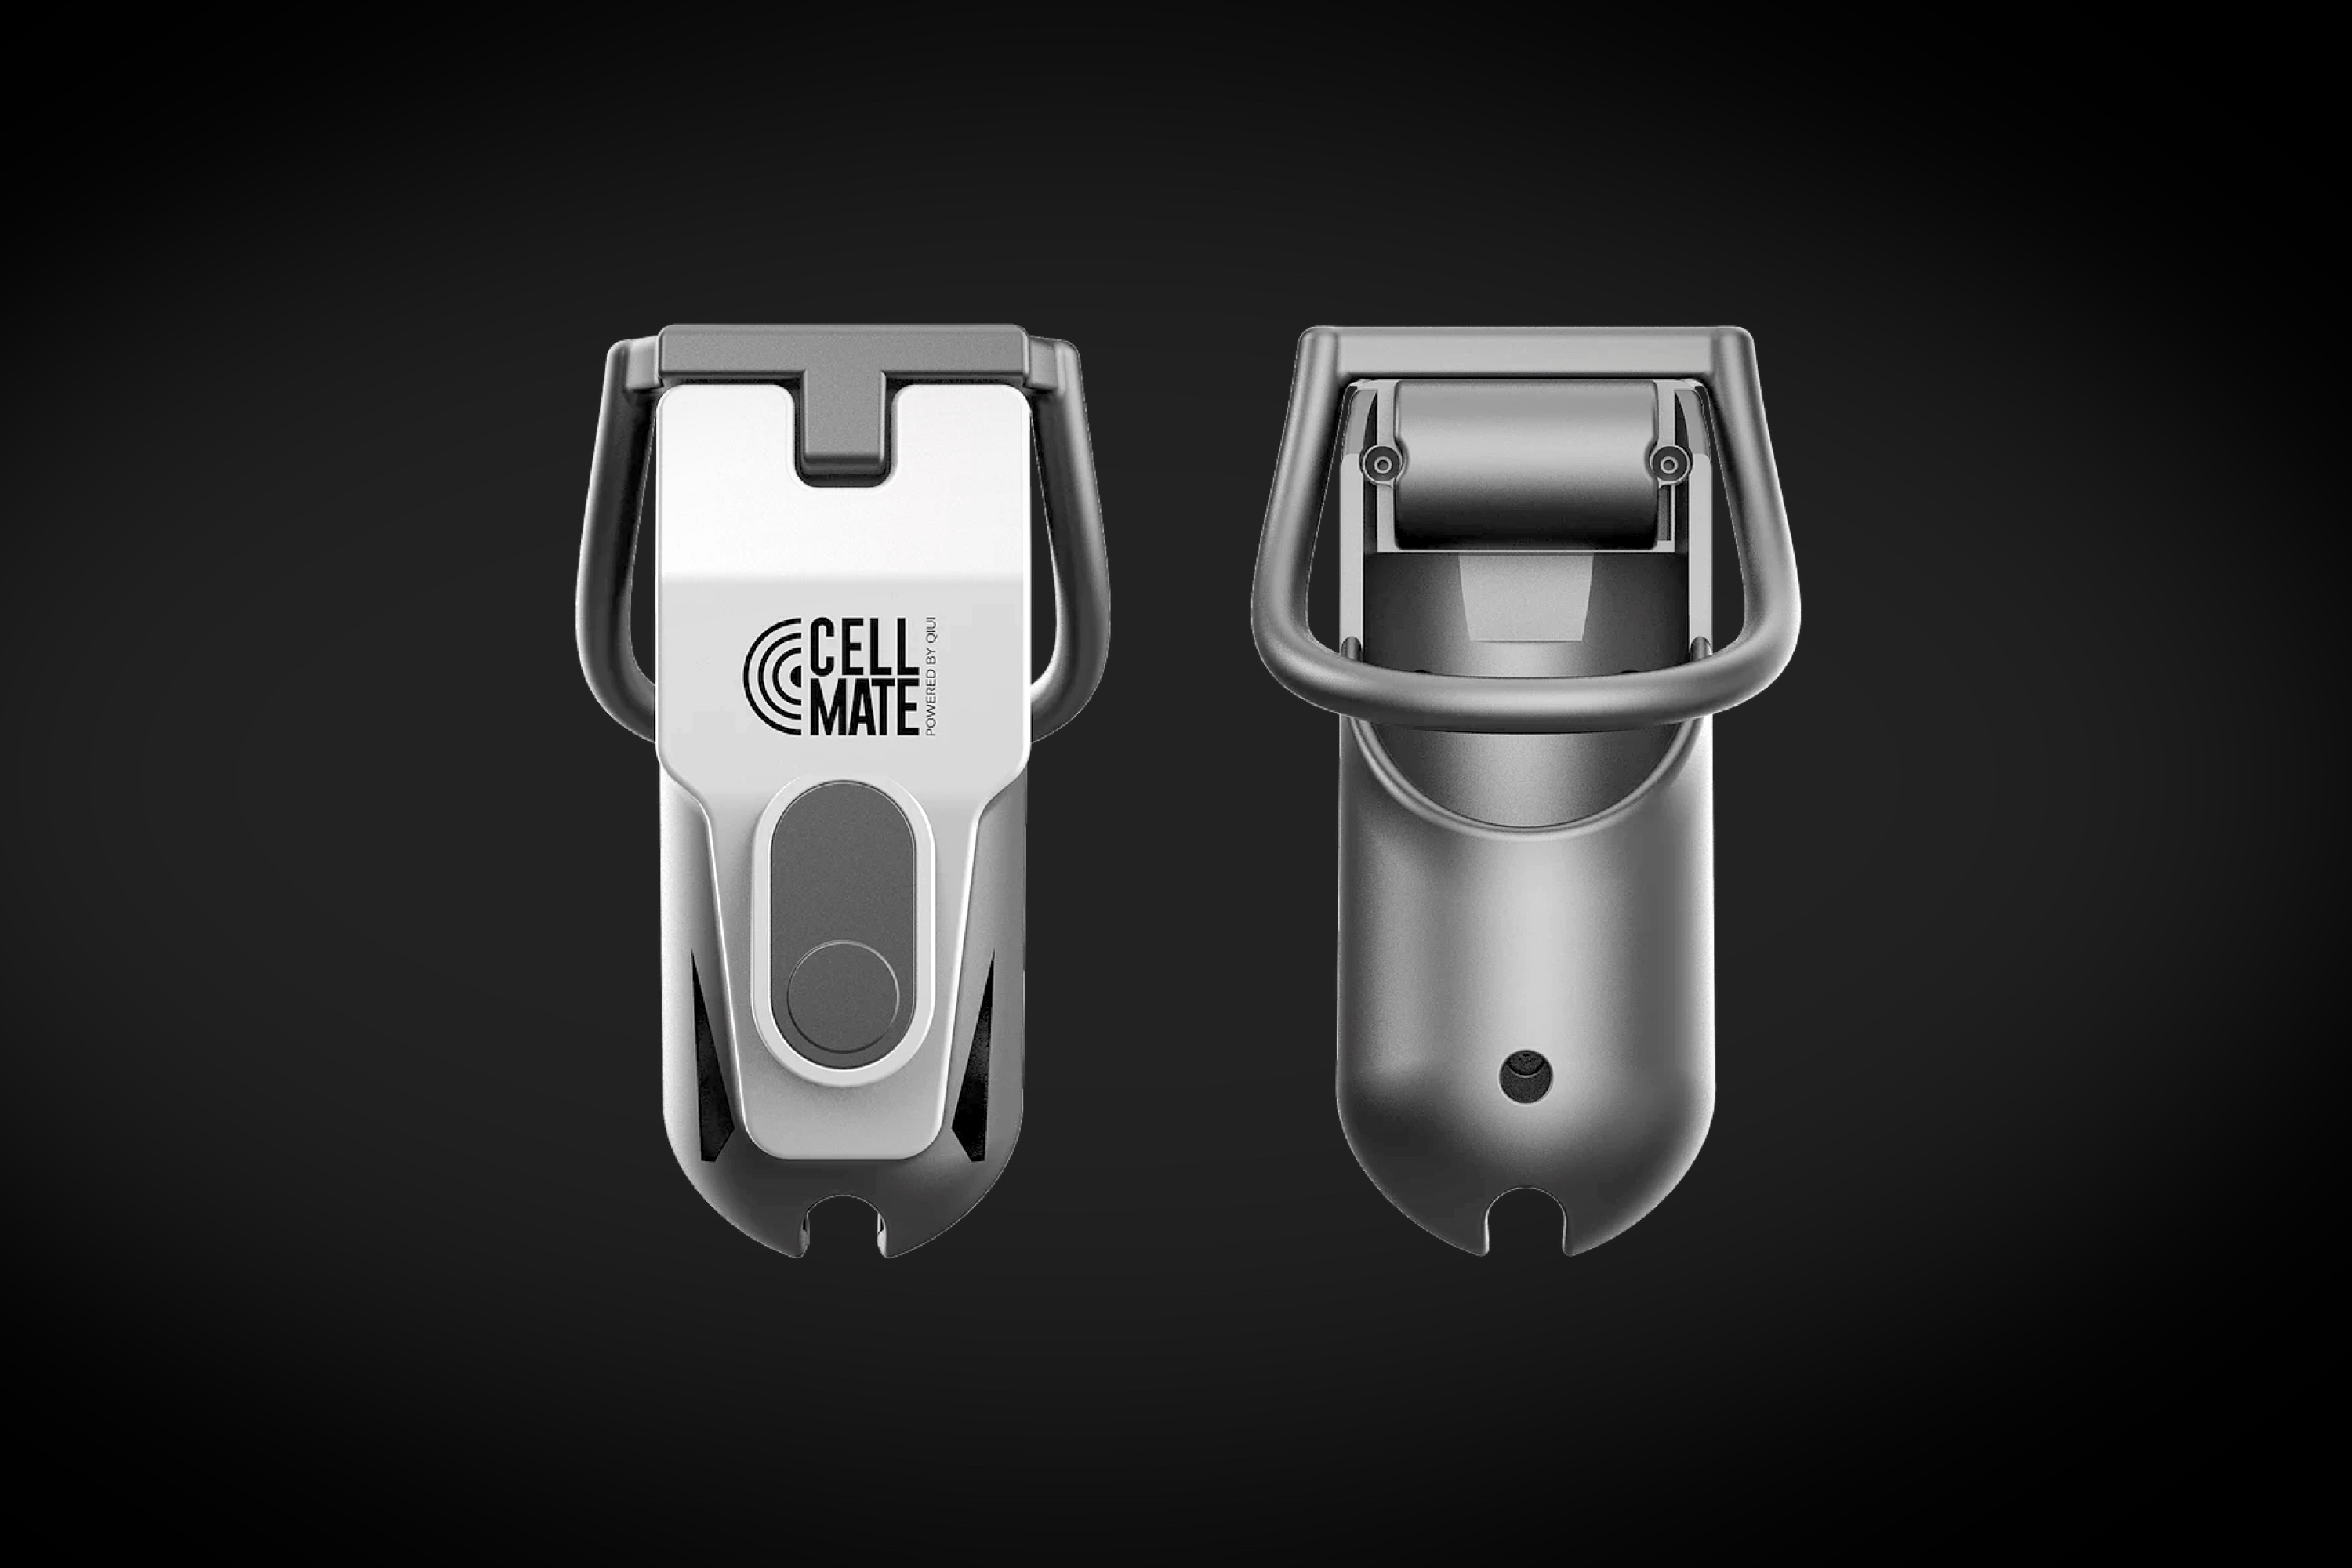 Male chastity gadget hack could lock users in — Cellmate